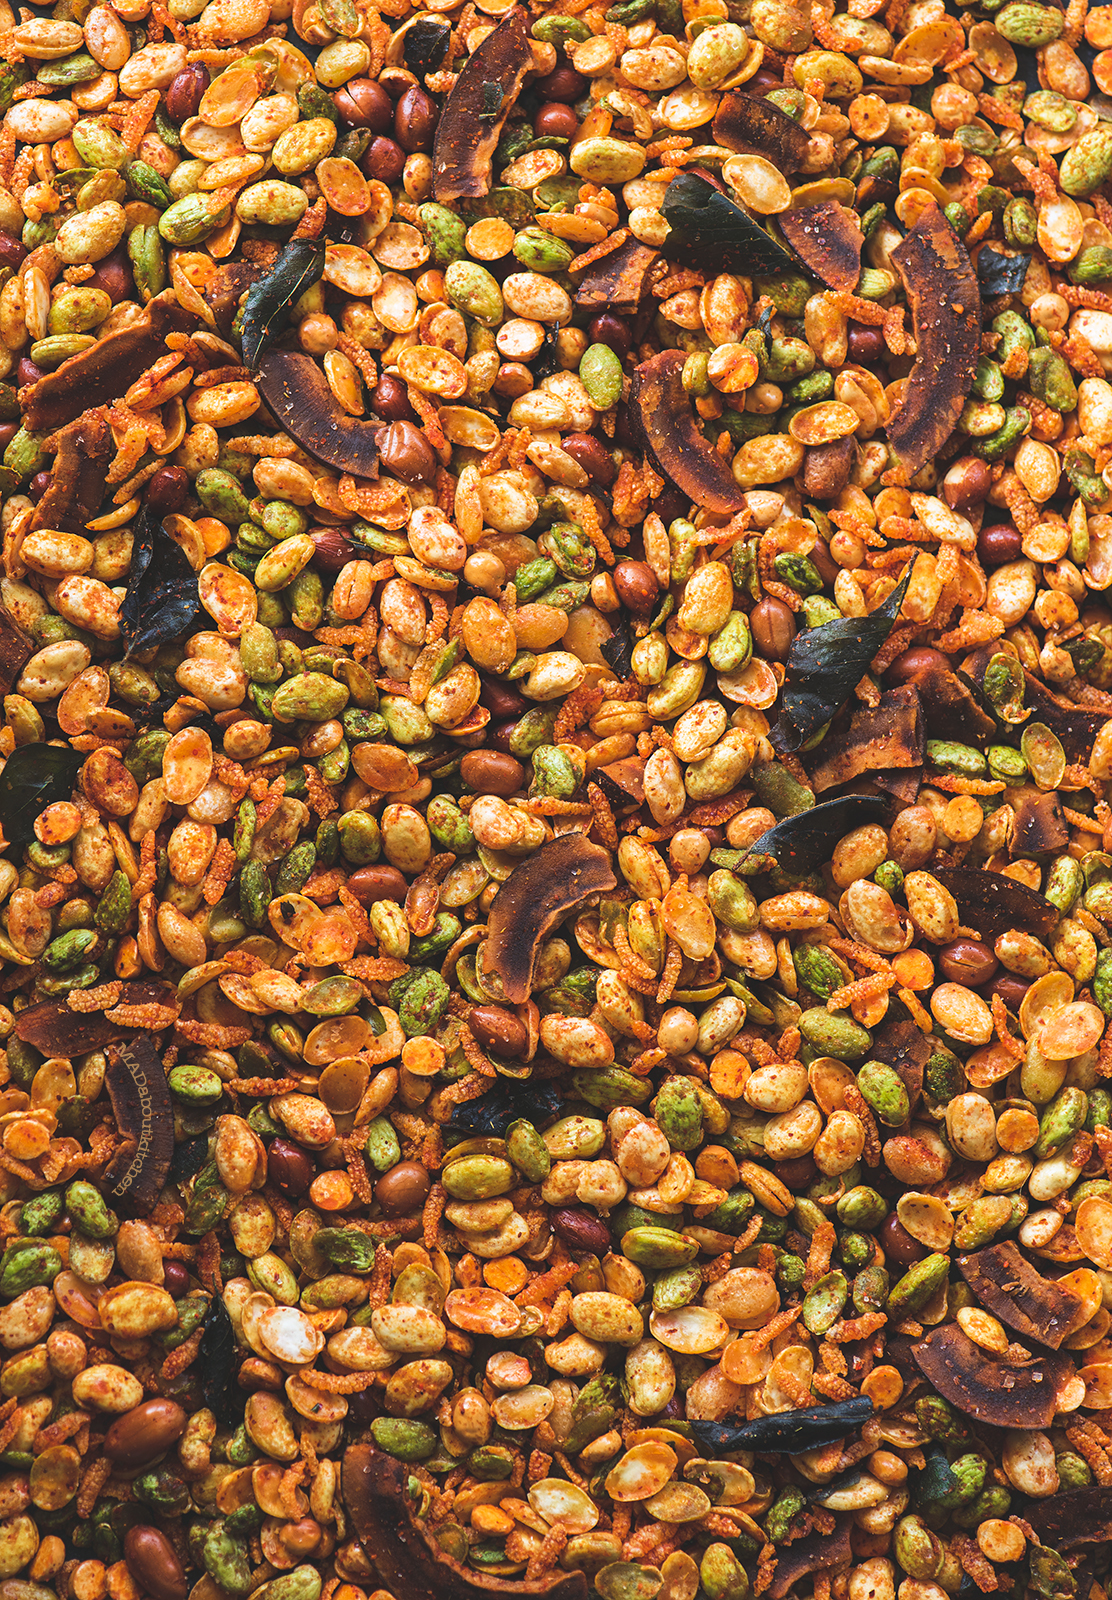 Avarekaalu mixture is one of the most addictive, loved deep fried, tea time snack from Karnataka. It is a crispy, spicy snack with a hint of sweetness.